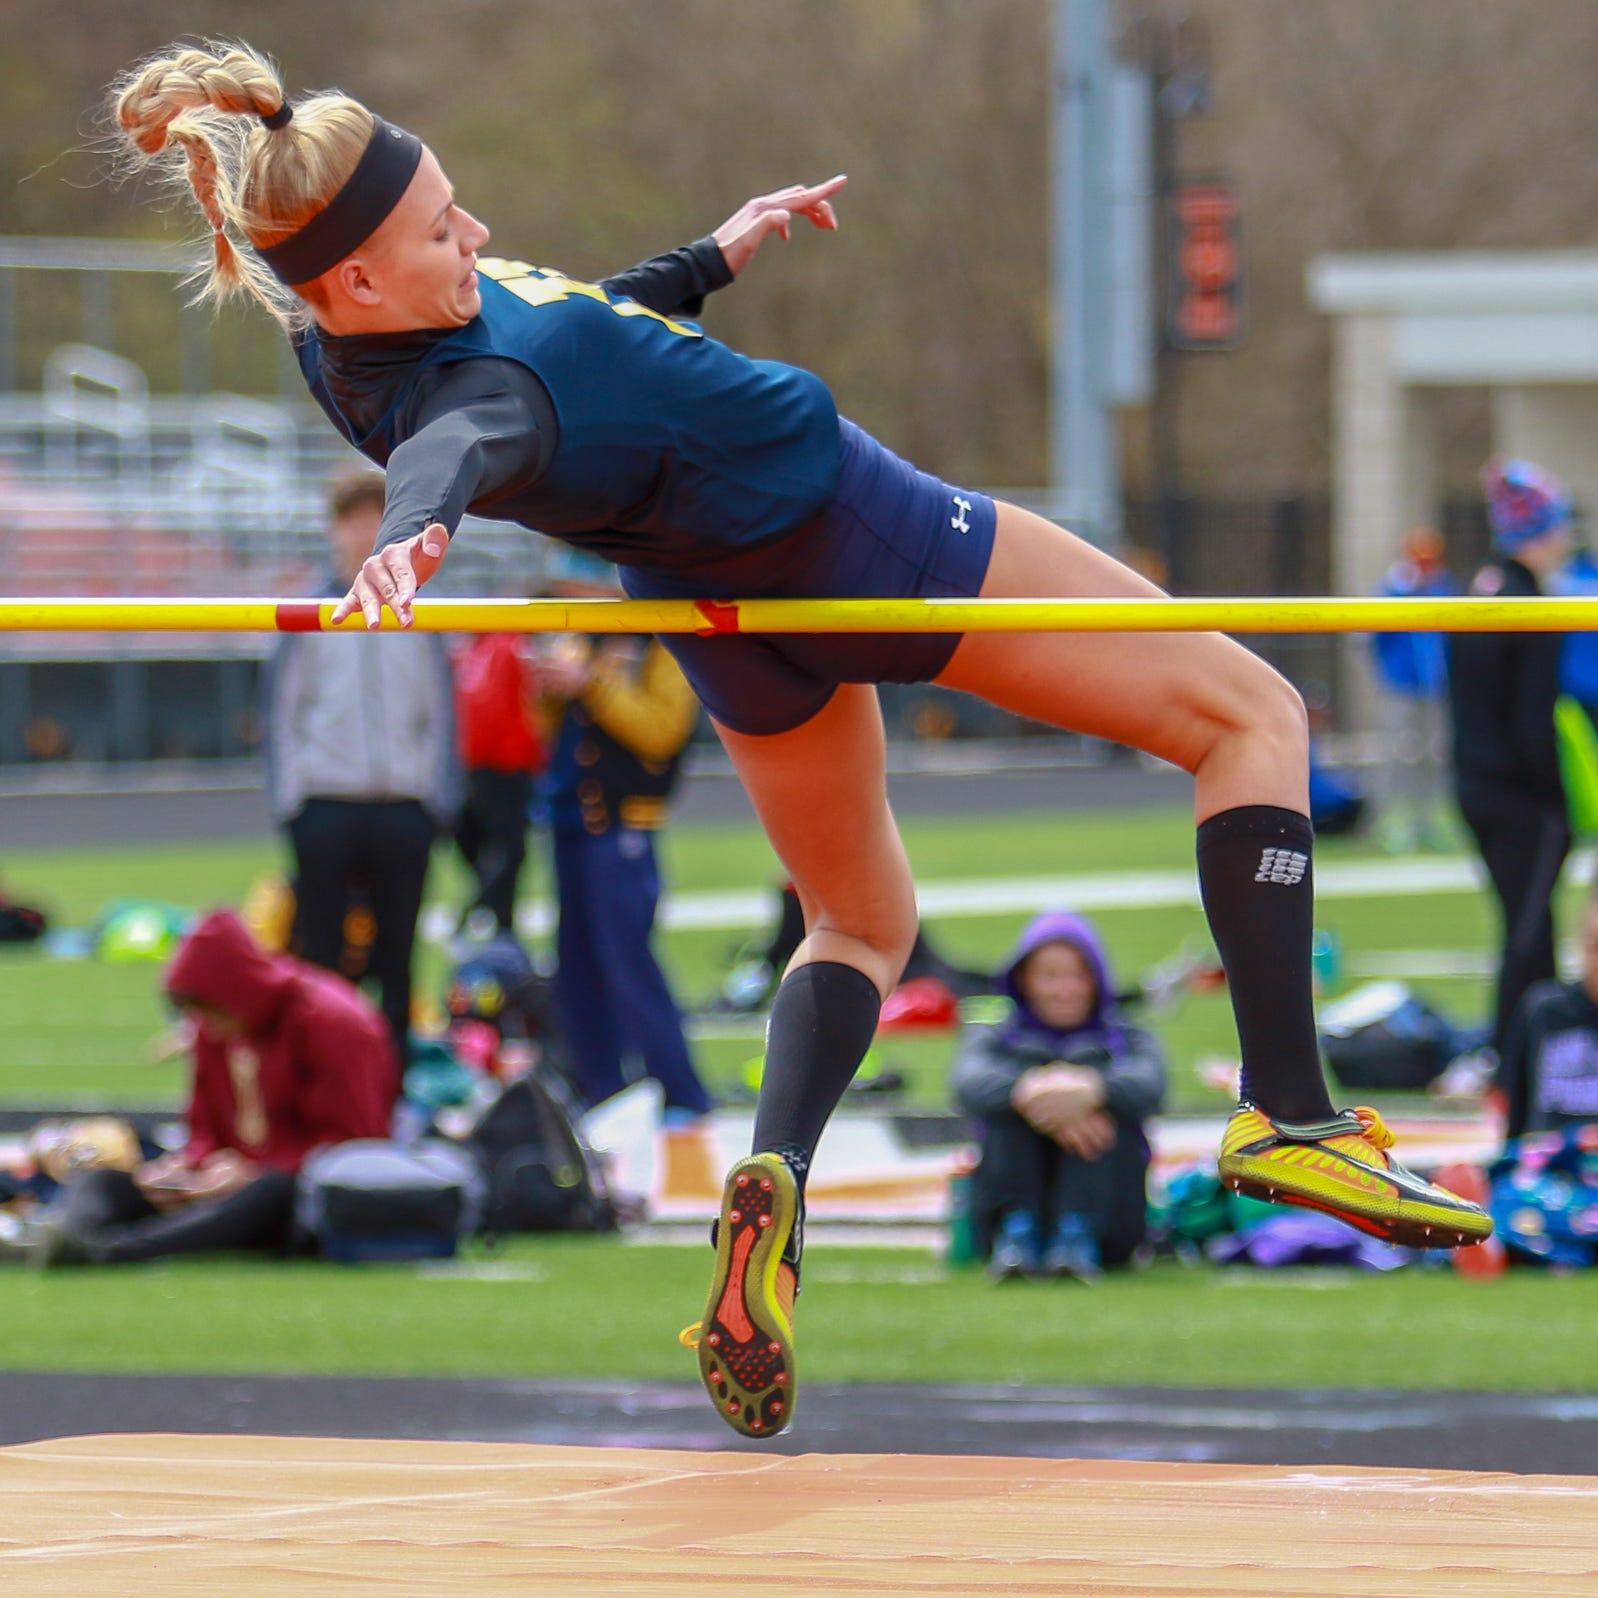 Frequent shoe changes part of routine for Hartland track and field star Lindsey Strutz